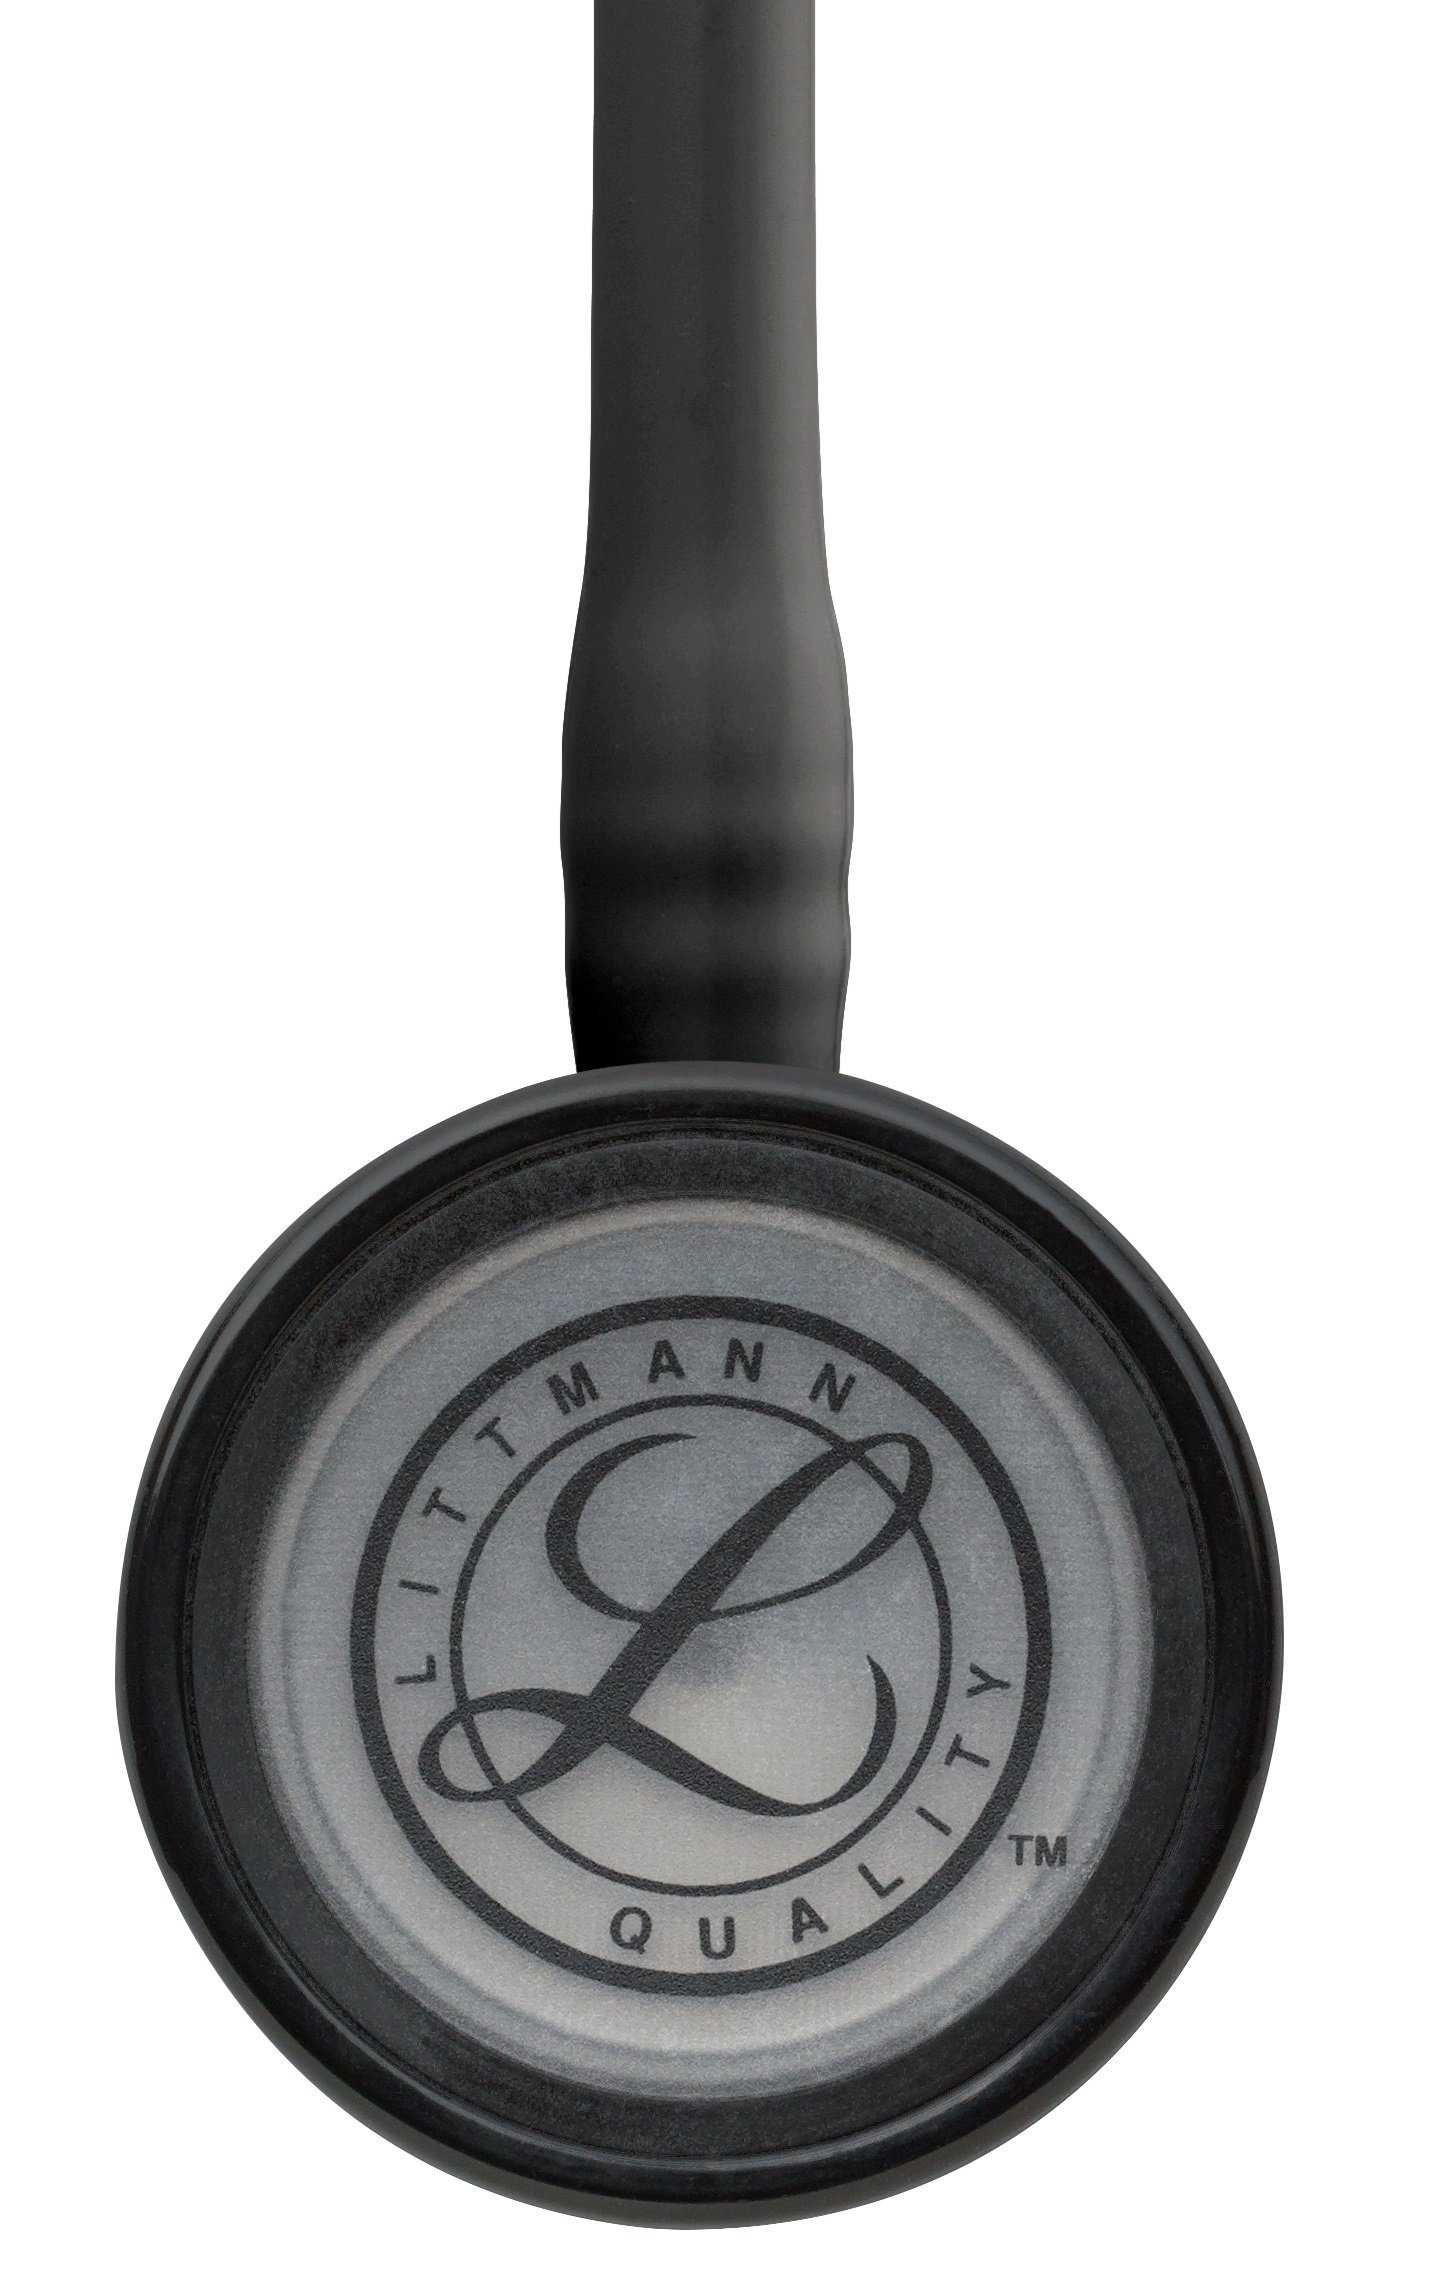 3M Littmann Cardiology III Stethoscope, Black Plated Chestpiece and Eartubes, Black Tube, 27 inch, 3131BE by 3M Littmann (Image #4)